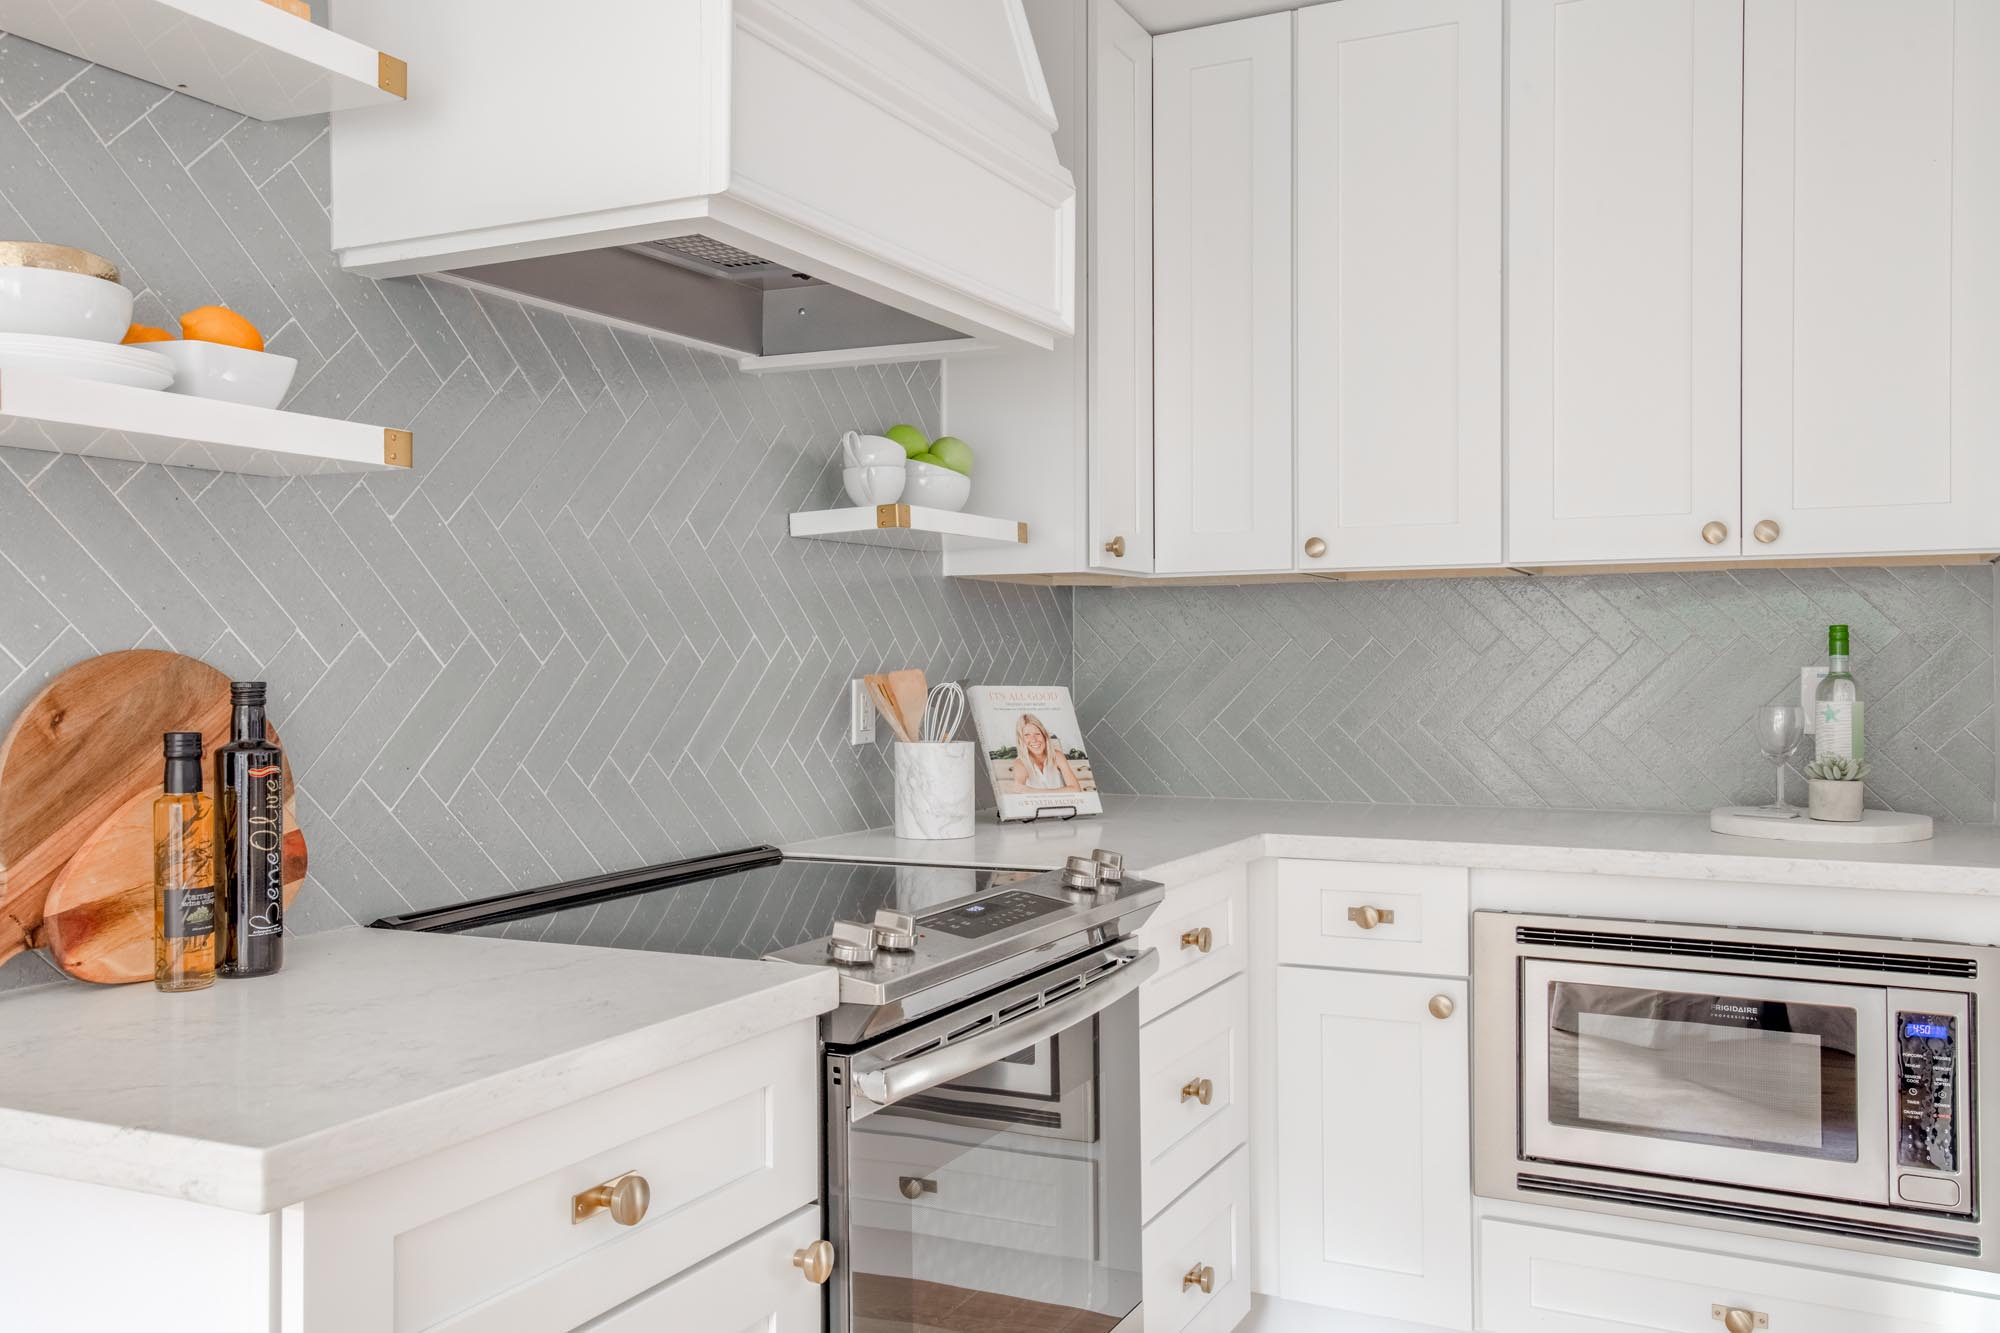 Kitchen with white cabinet and shelves utensils